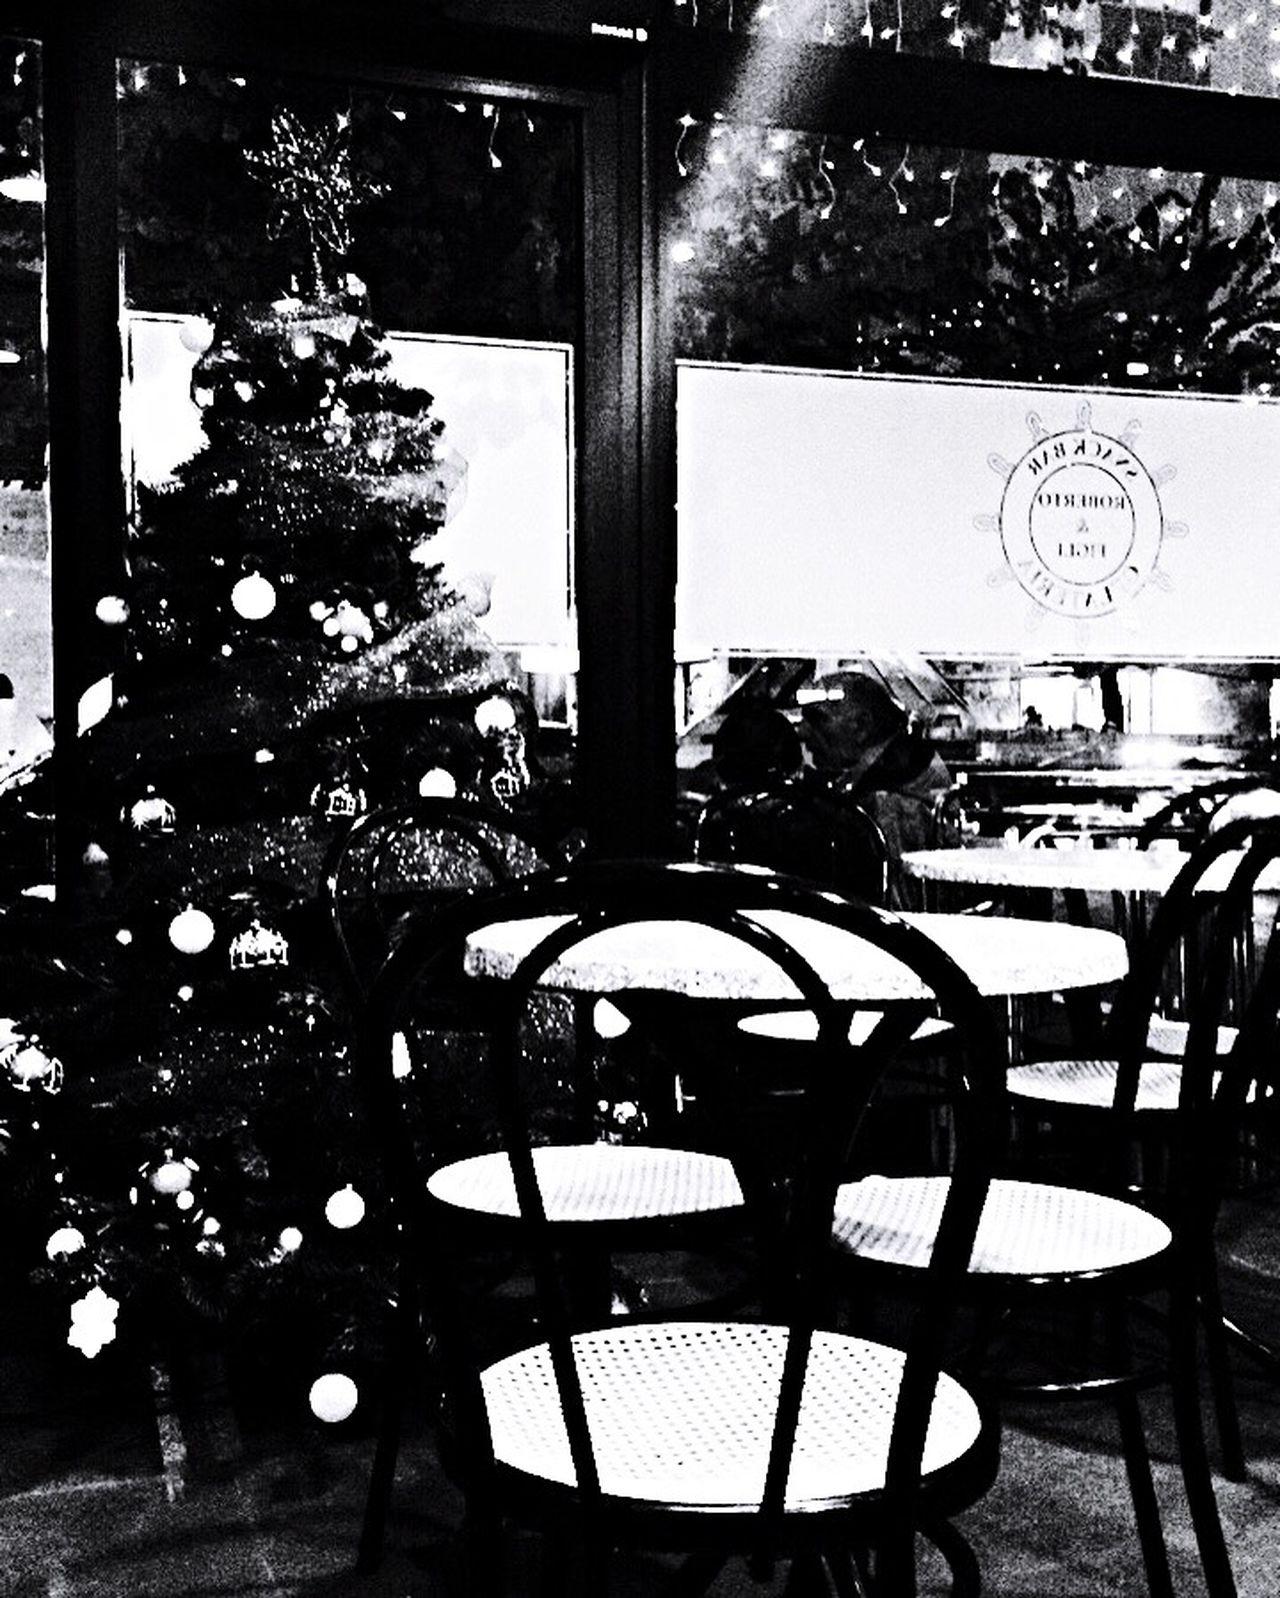 Black And White Street Photography Light And Shadow Rome Italy Lights Chair Empty Table Indoors  No People Nightphotography Night Xmas Decorations Xmas